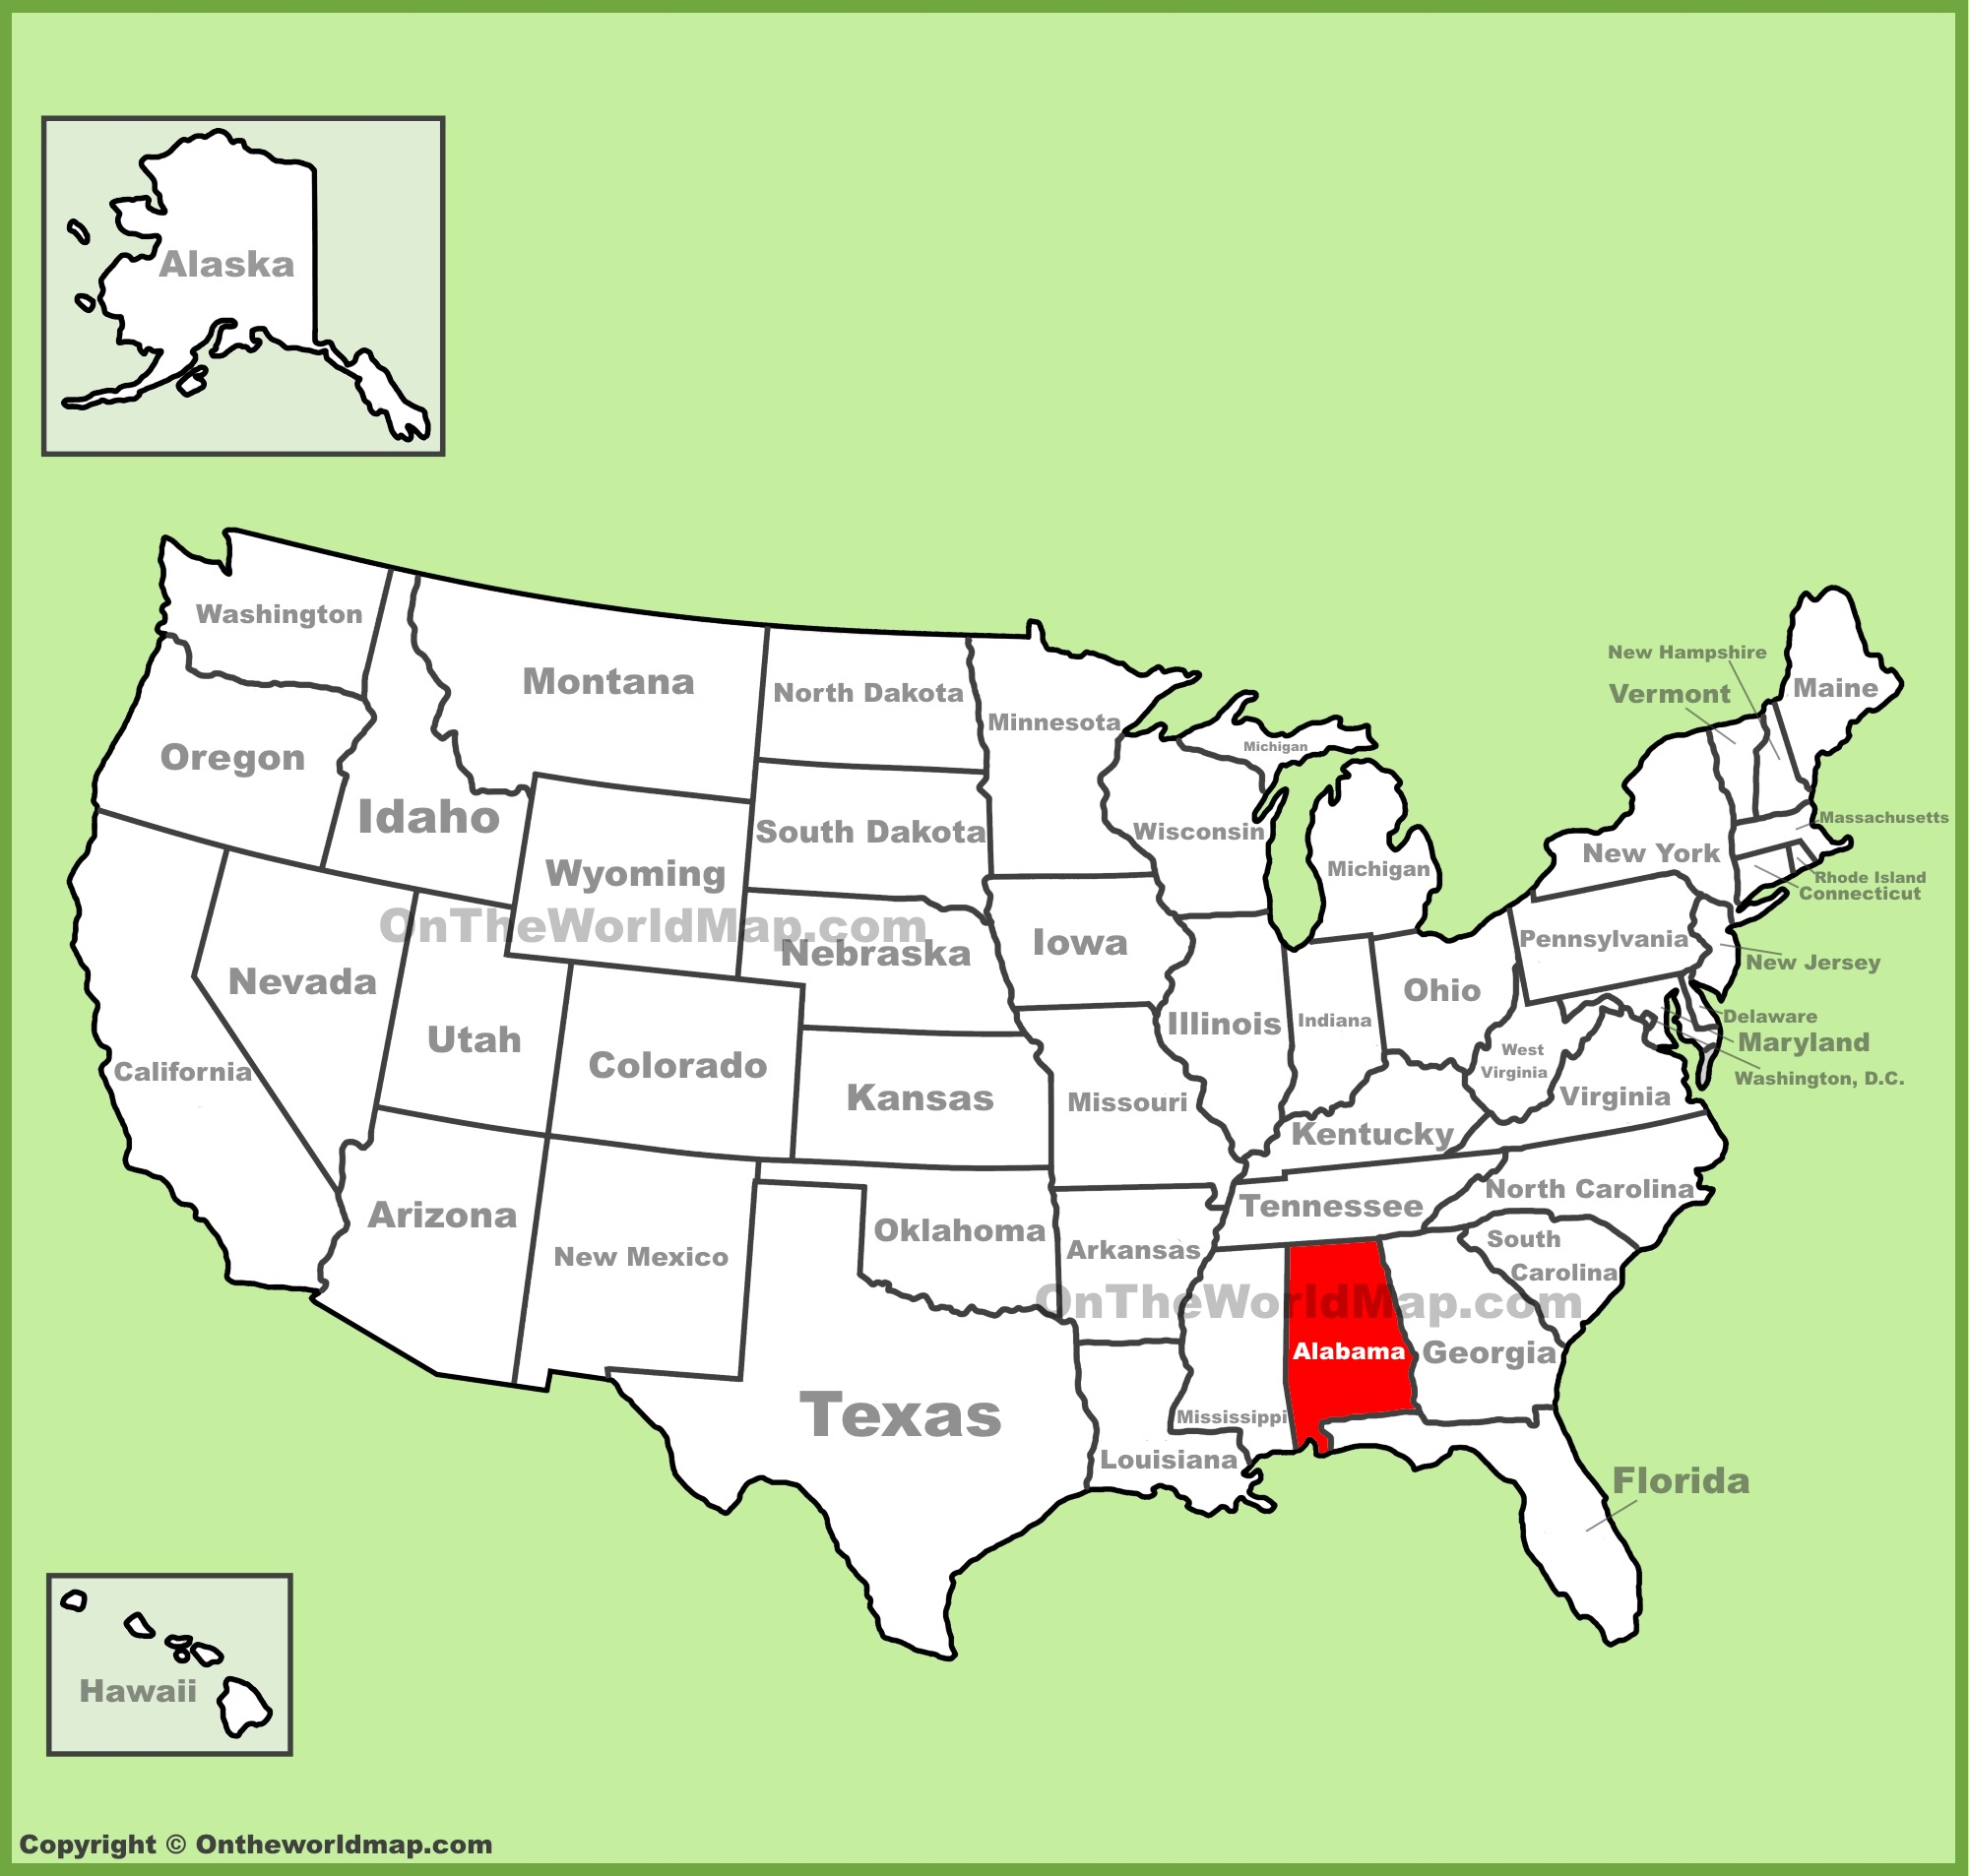 Alabama State Maps | Usa | Maps Of Alabama (Al) - Map Of Alabama And Florida